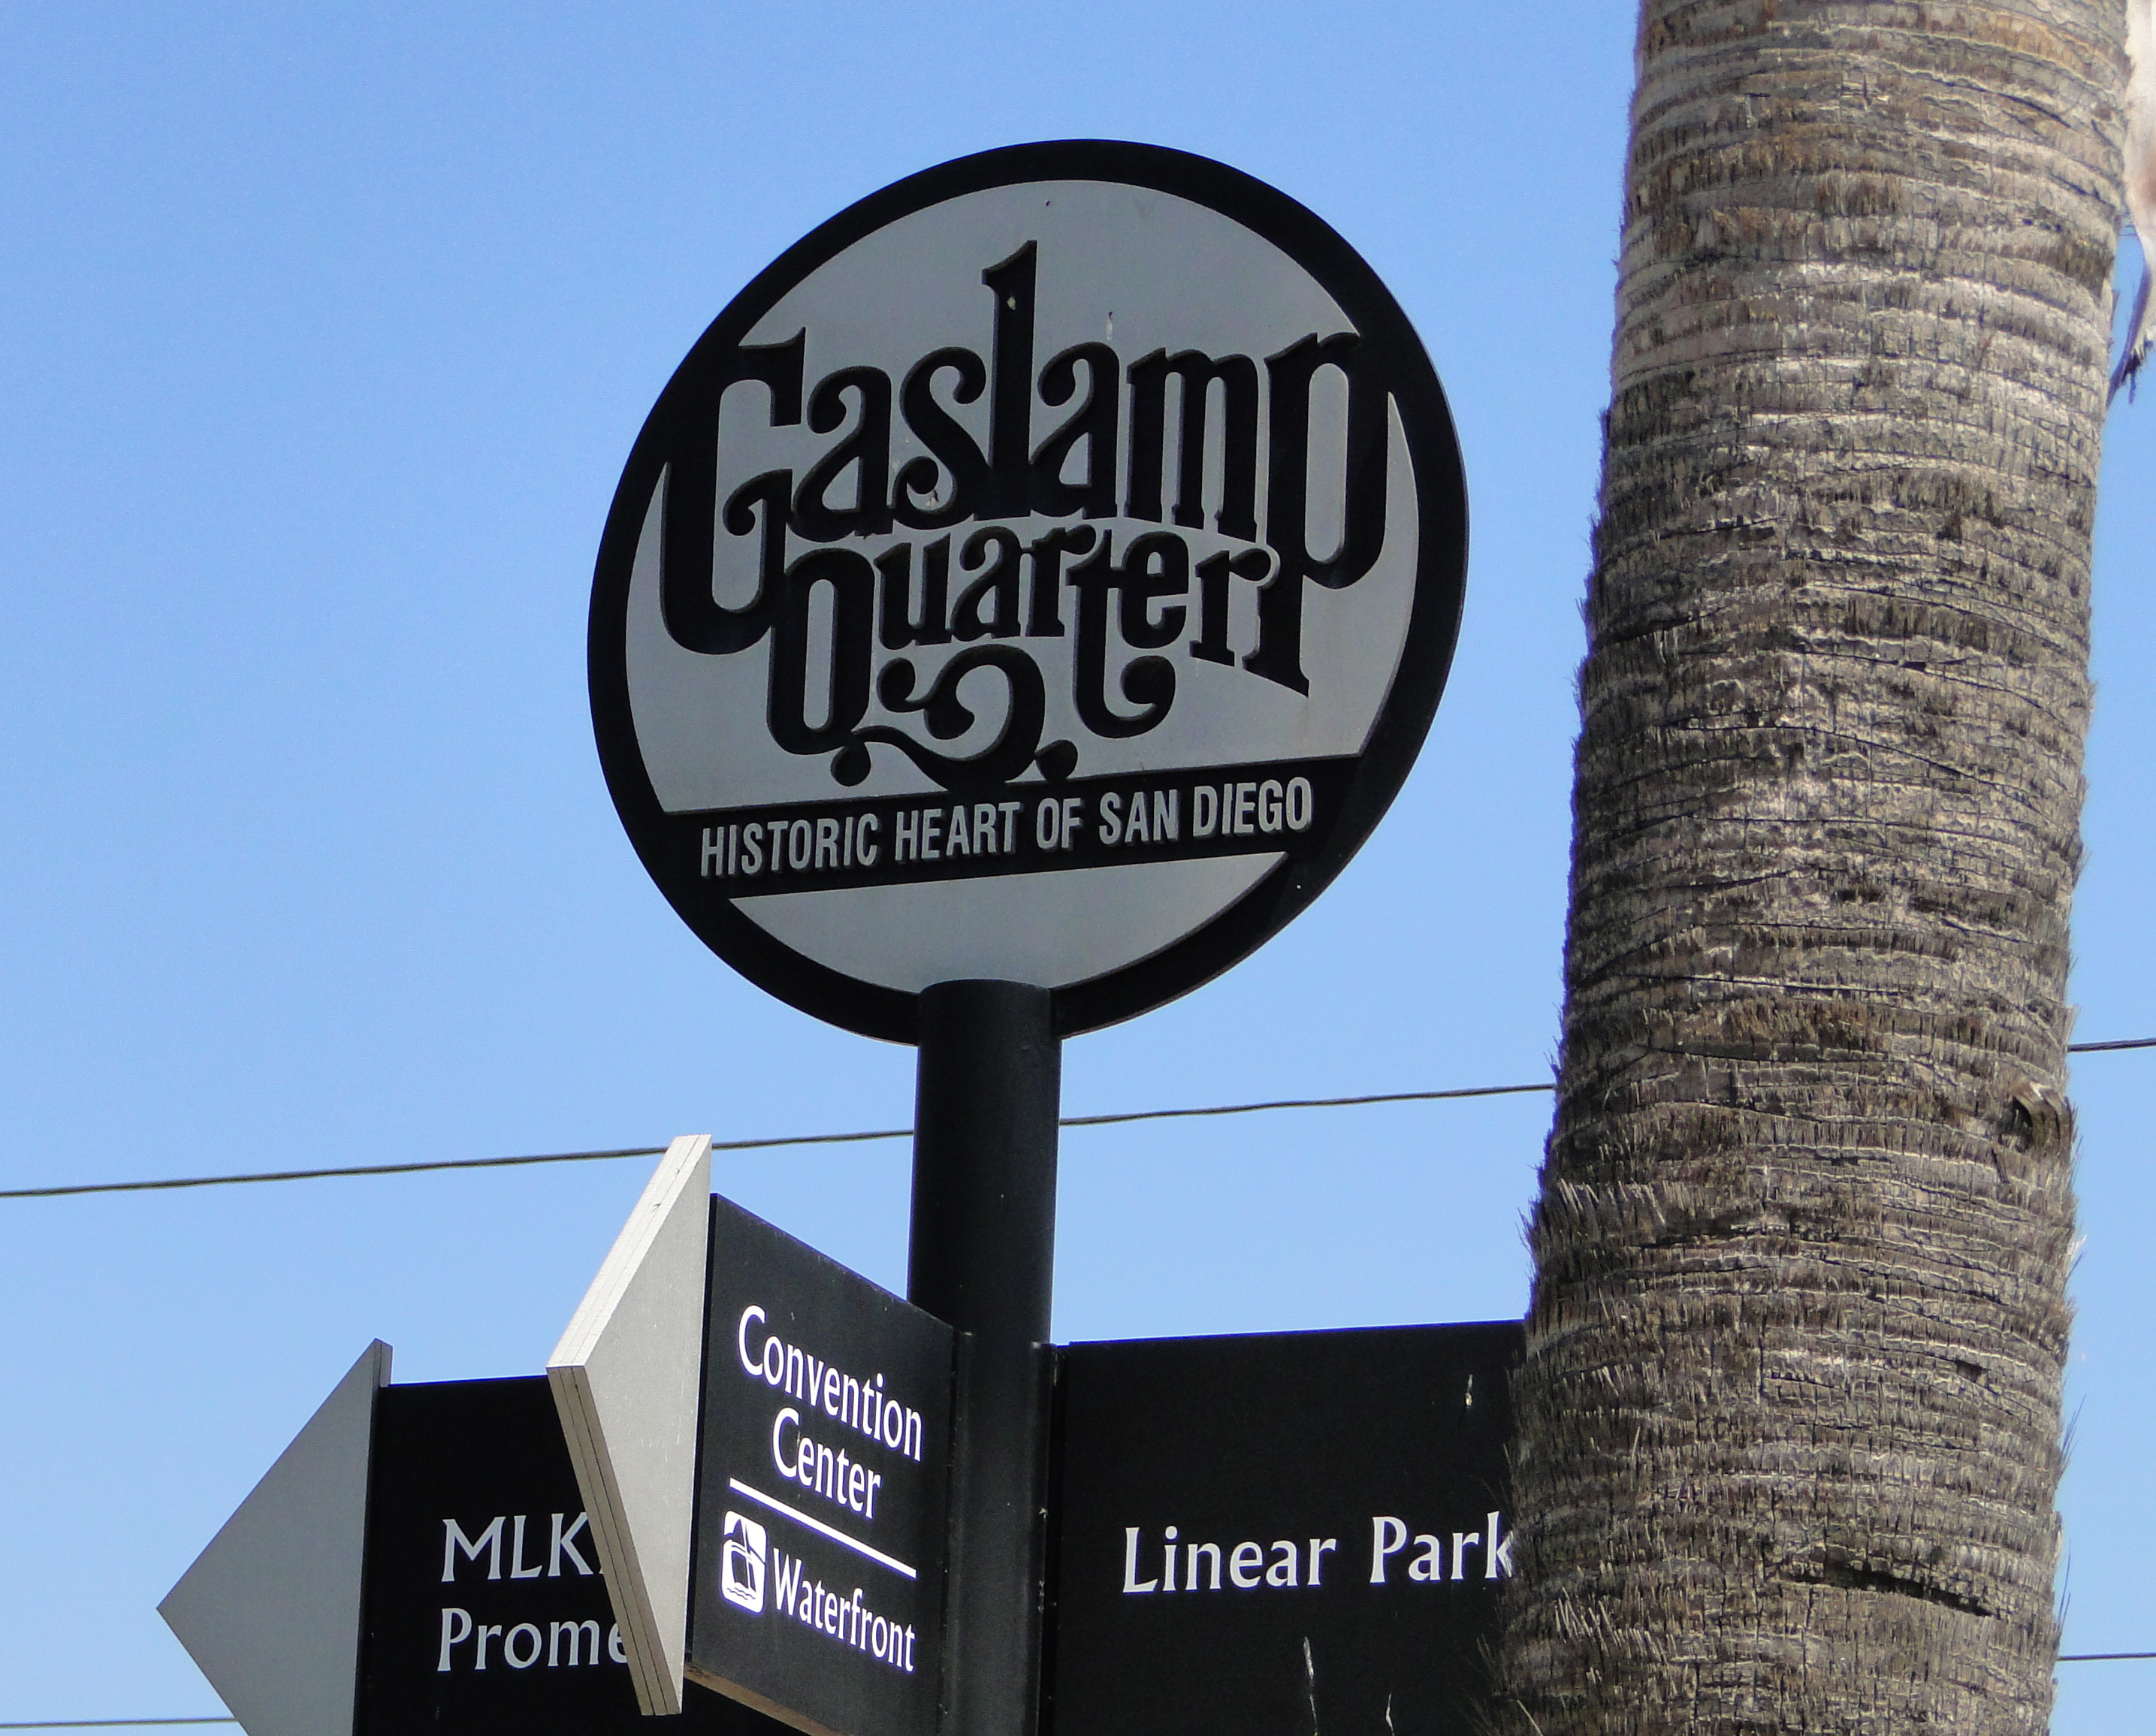 San Diego Gas Lamp Quarter